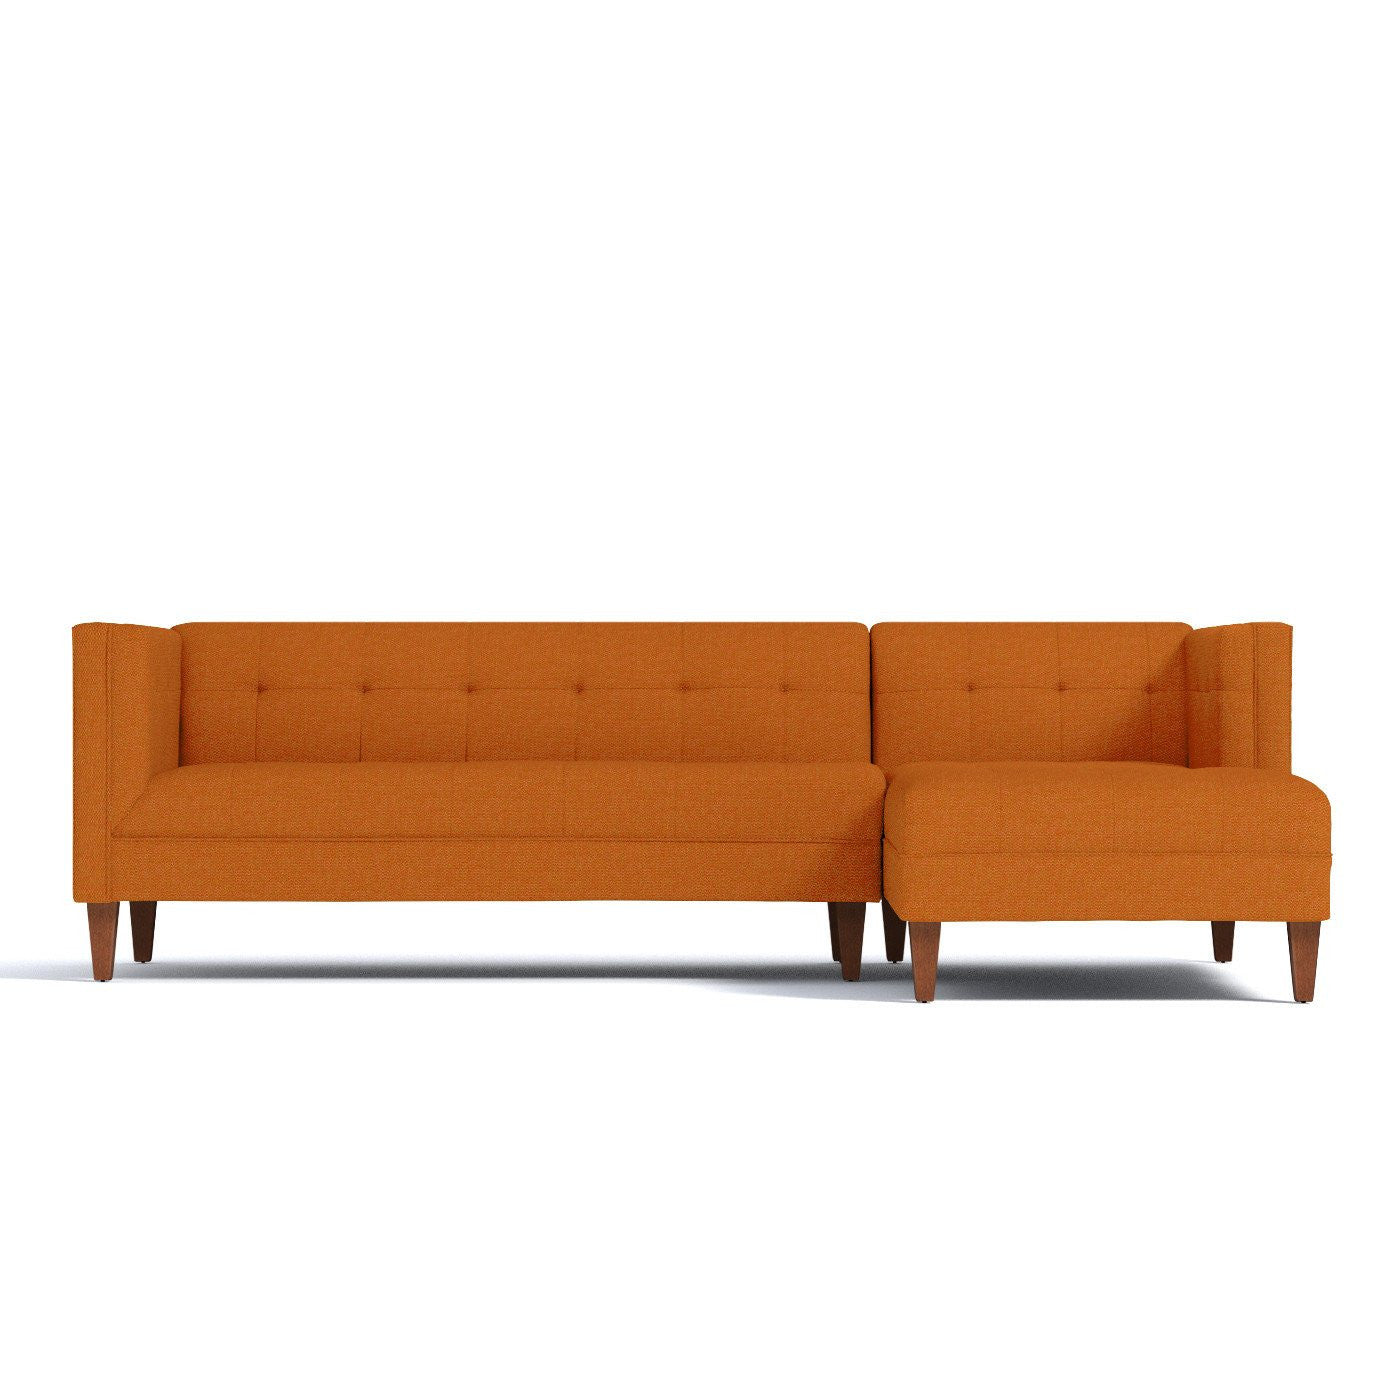 shaped unique living room chaise rug orange mediasupload glorious of com hand sectional left with indian sofa l best